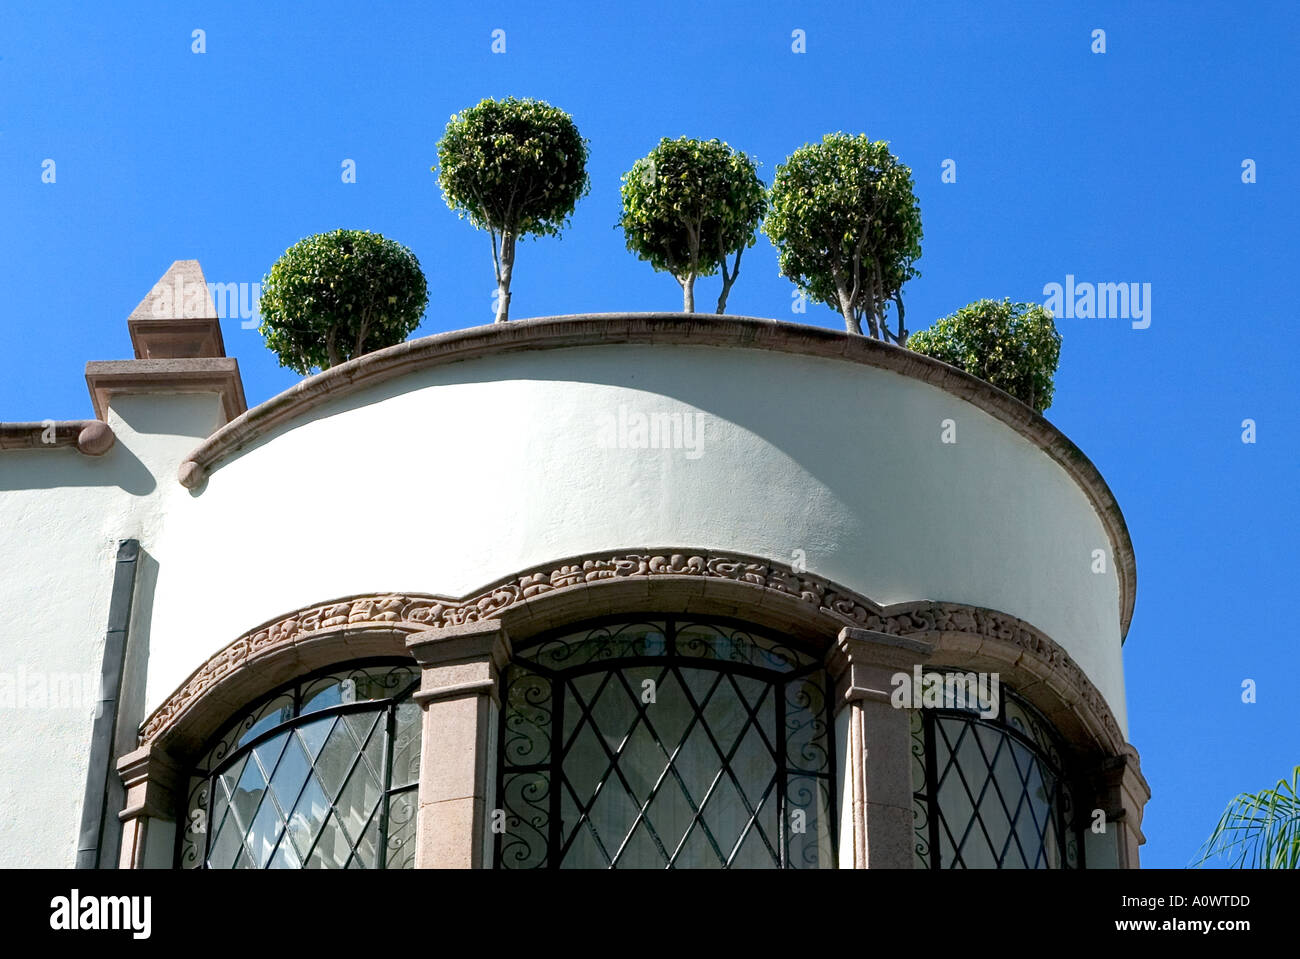 Clipped bushes on a building in Mexico City - Stock Image